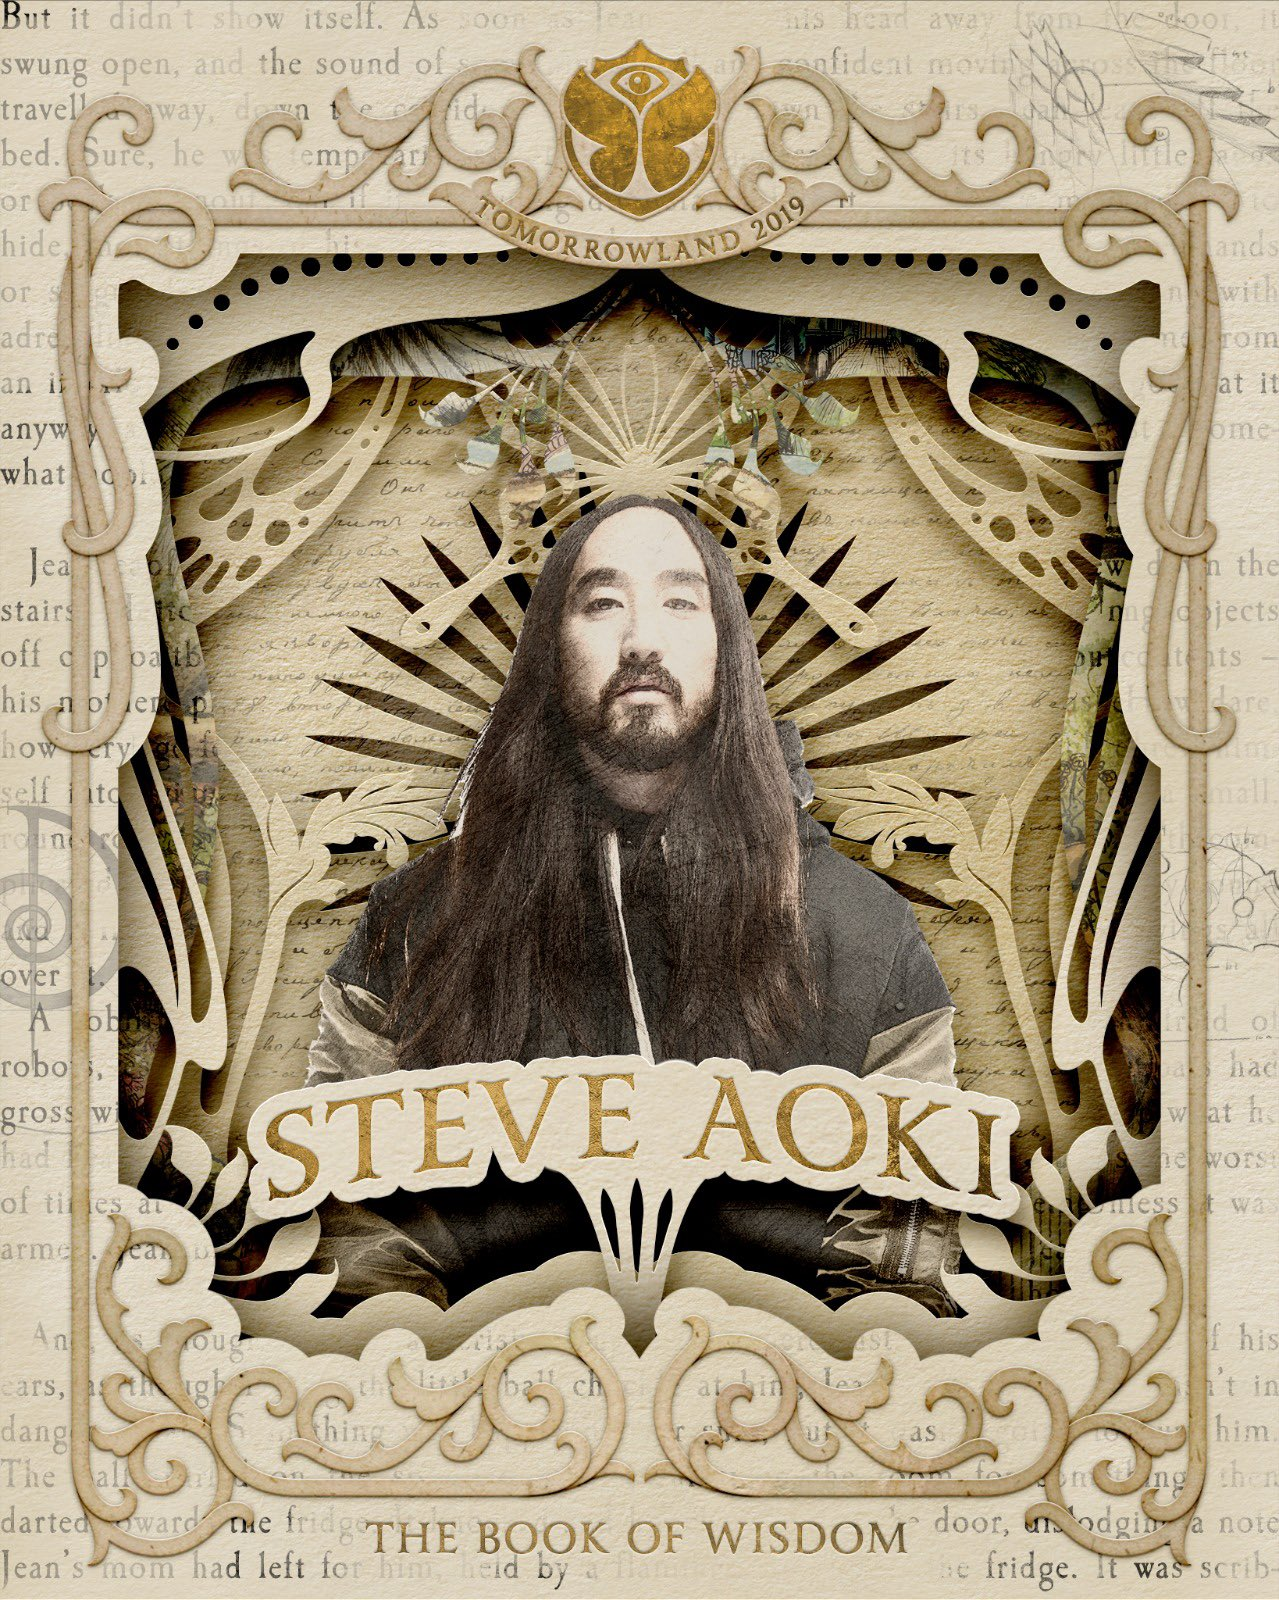 Tomorrowland 2019!! I'm coming back!! So Excited!!! https://t.co/CvTi7Myv34